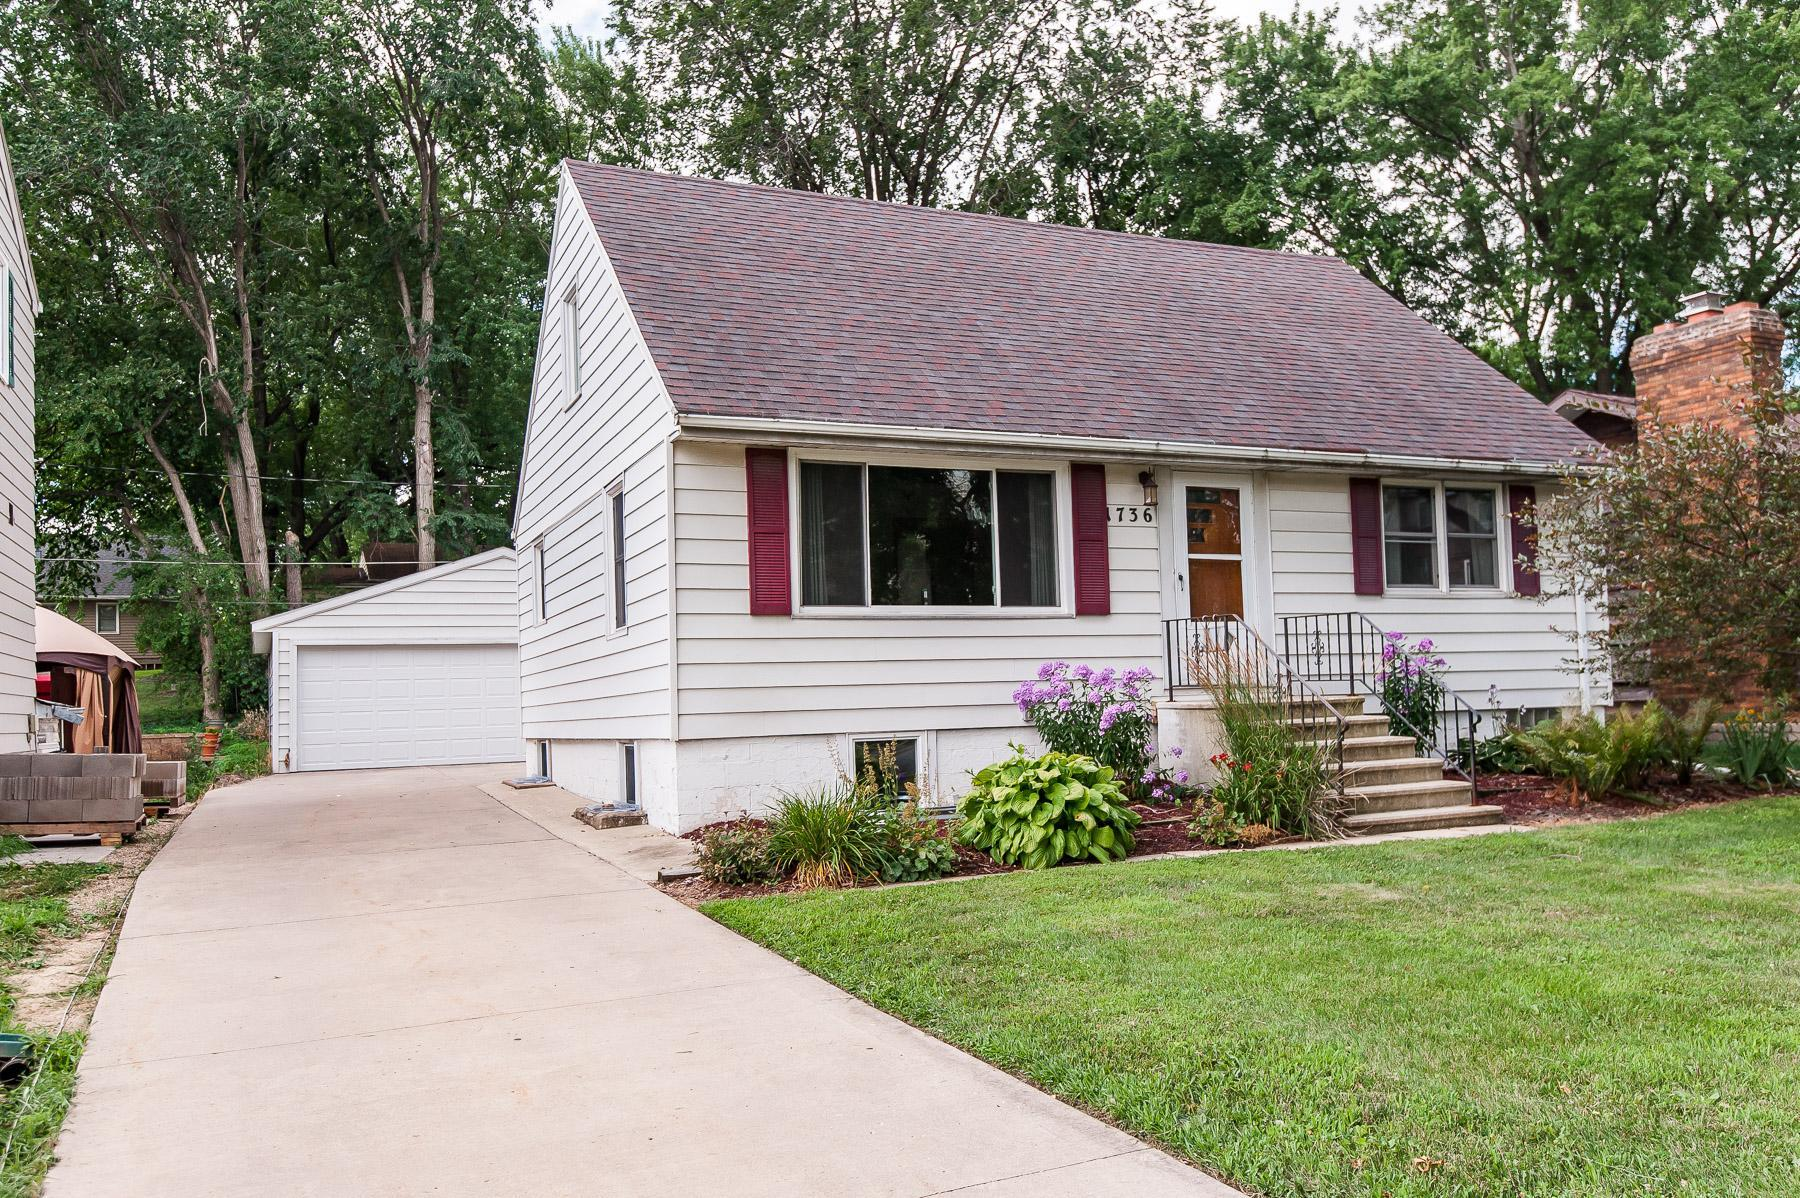 1736 2nd Street NW Property Photo - Rochester, MN real estate listing